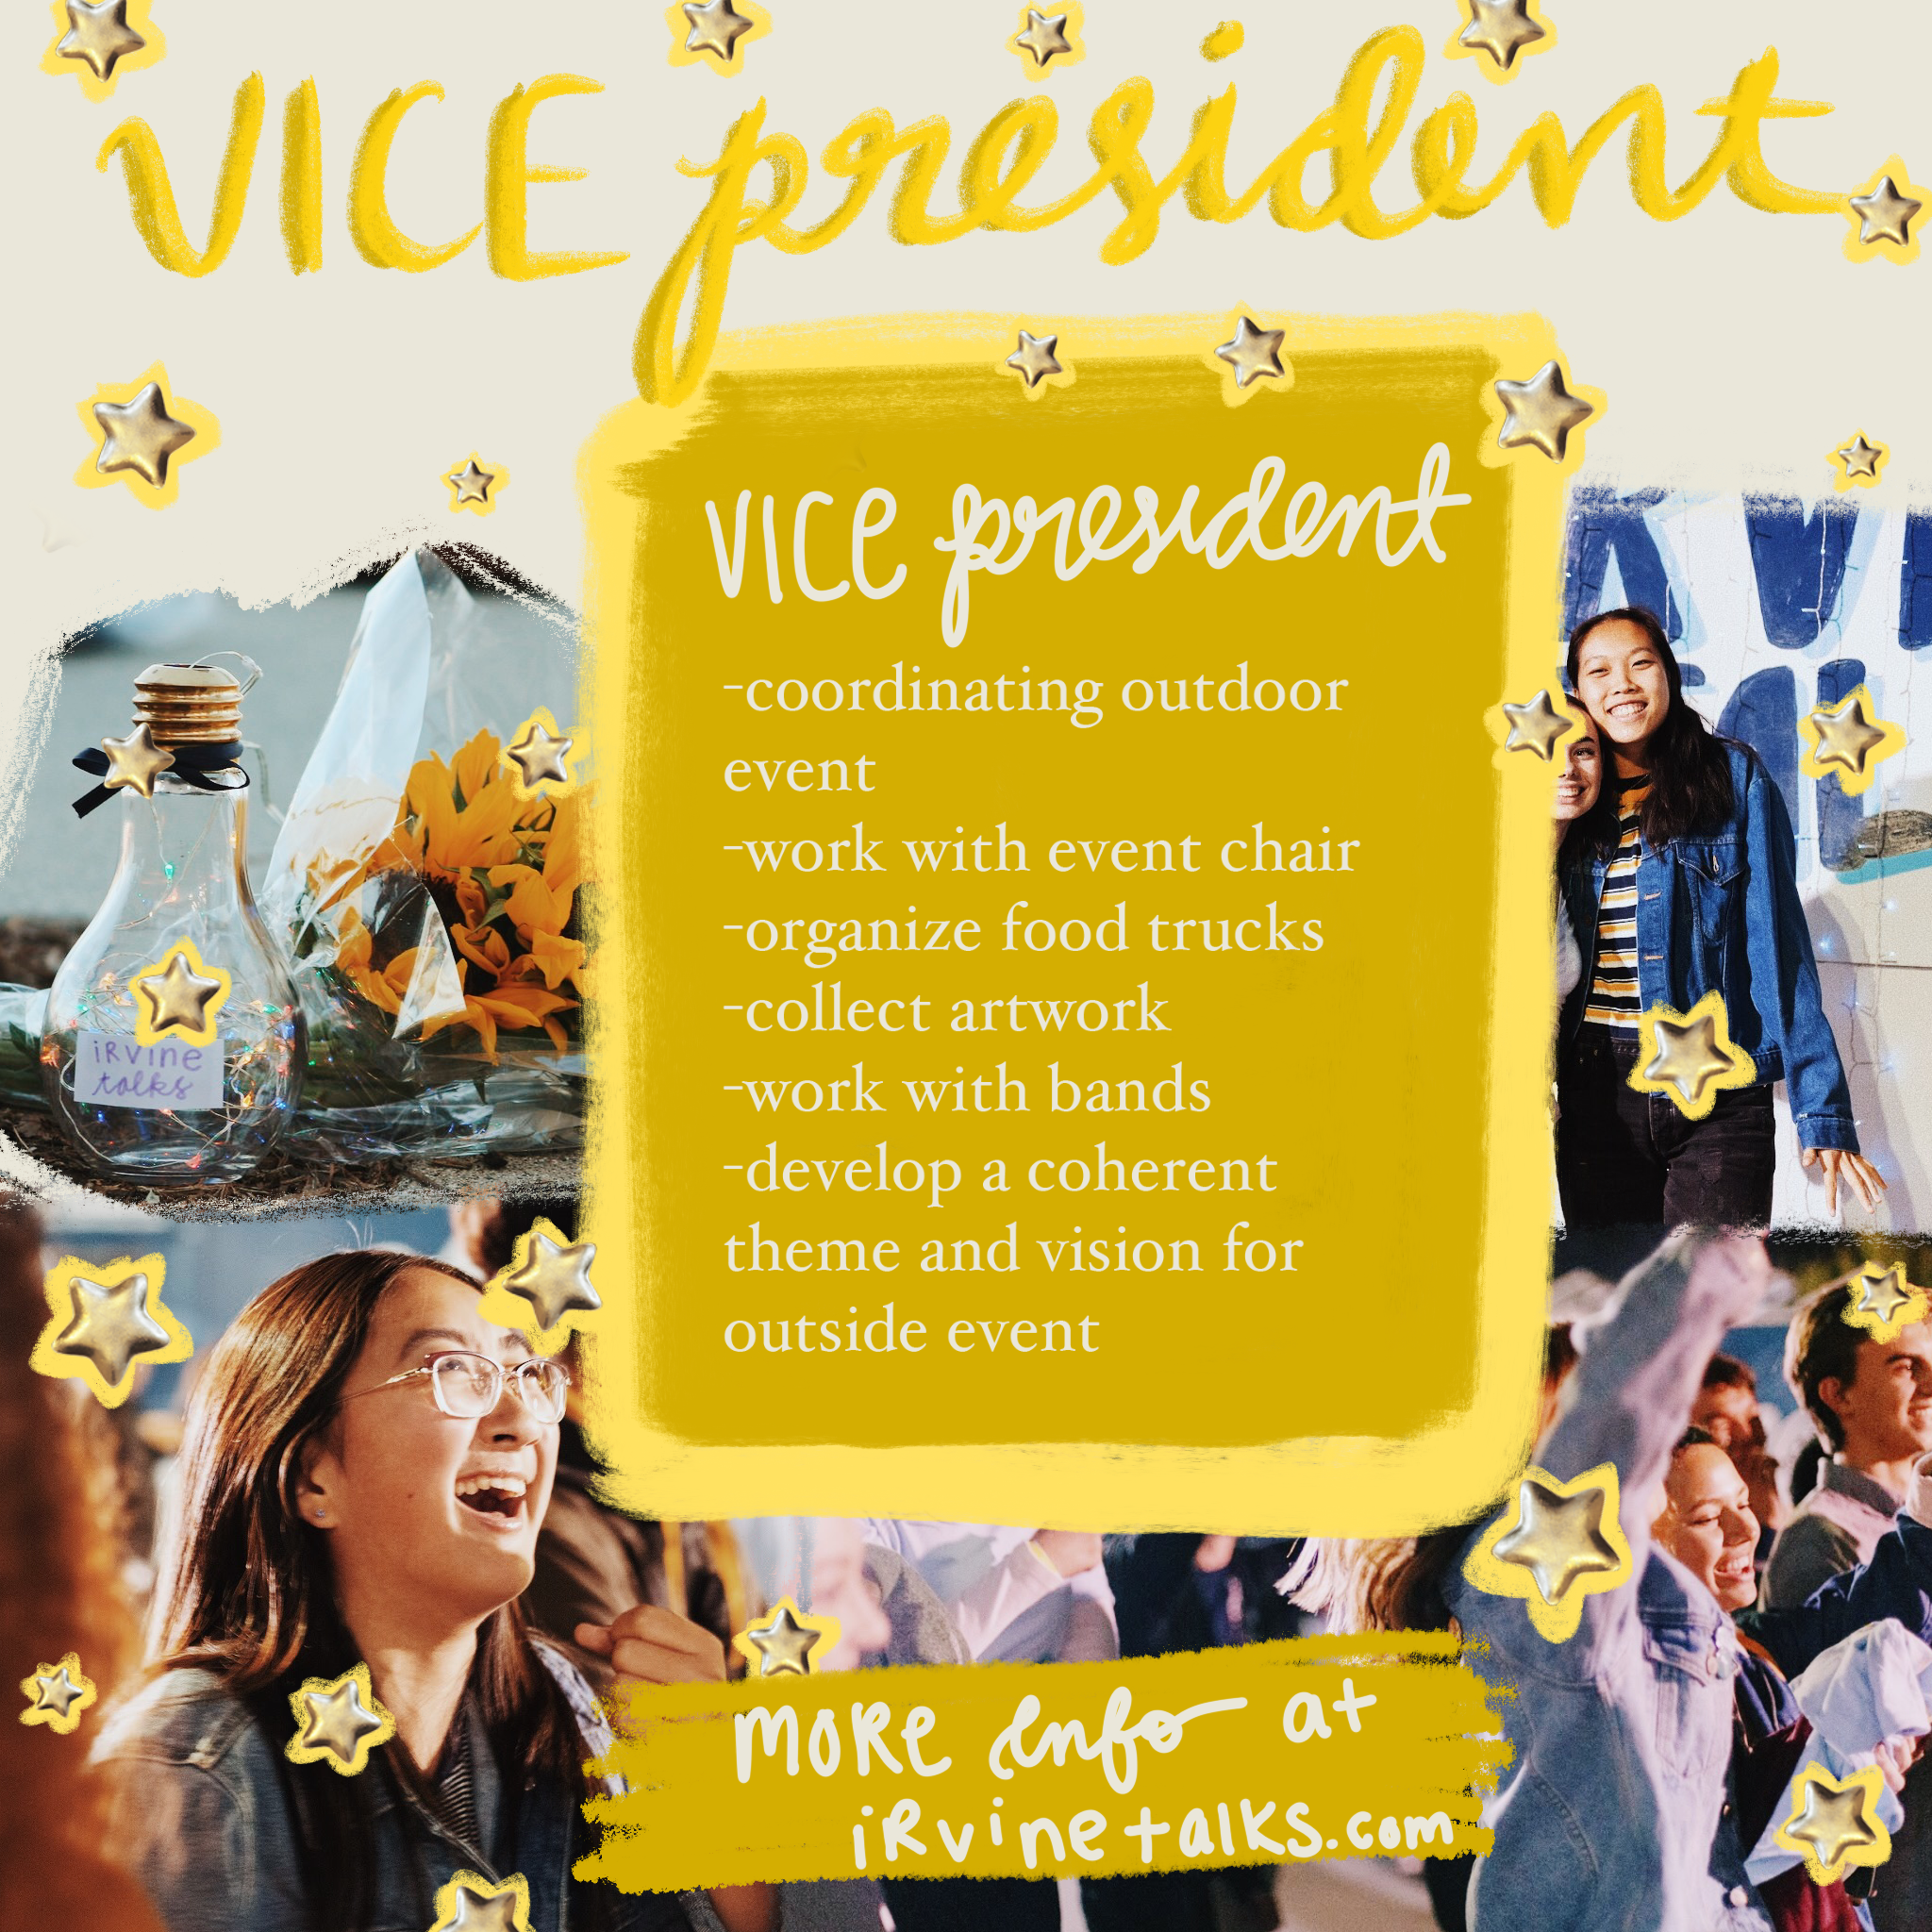 Vice President - The Vice President responsible for coordinating the outdoor event. They will be working closely with the Events Chair, who shares similar responsibilities. Some of those responsibilities include:- Organizing food trucks and entertainment for the outside event- Coordinating and collecting artwork from each high school- Working with student bands/organizing equipment- Developing a coherent theme and vision for the outside event